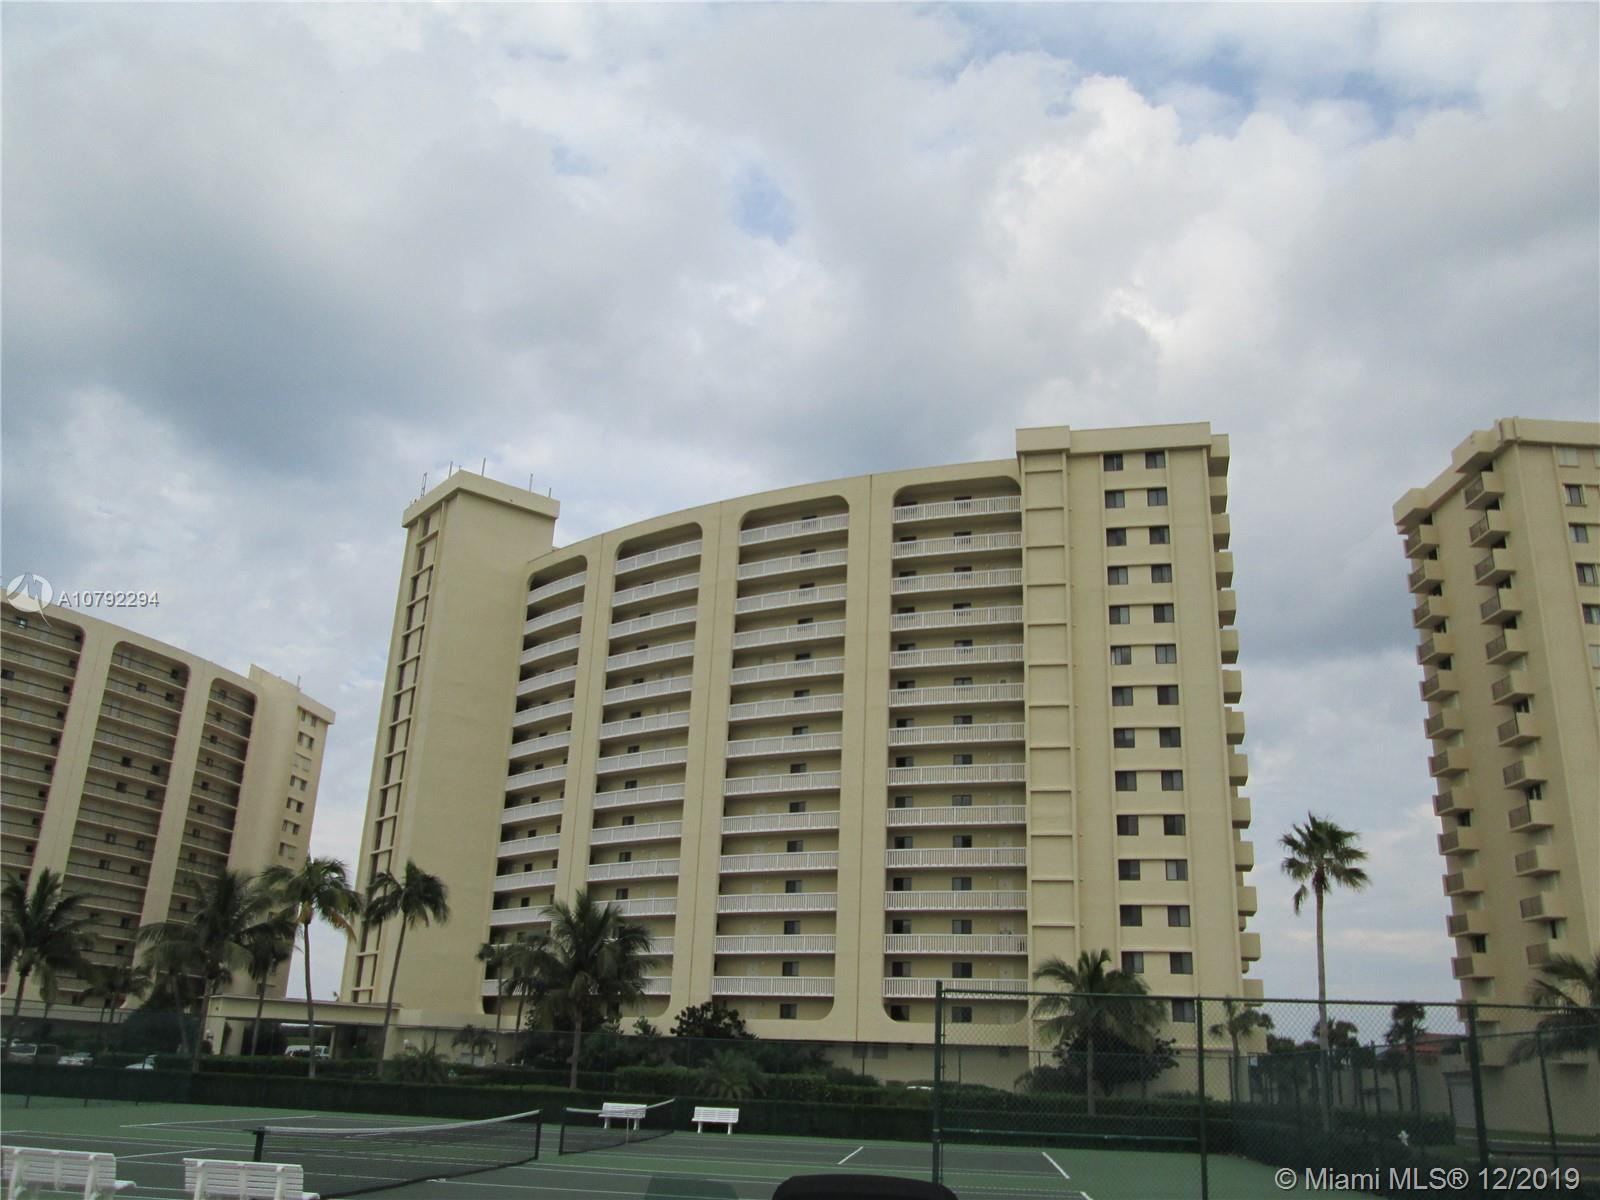 VACANT - EZ TO SHOW!!  END UNIT WITH STELLAR VIEWS OF THE OCEAN AND CITY.  POPCORN CEILINGS REMOVED,